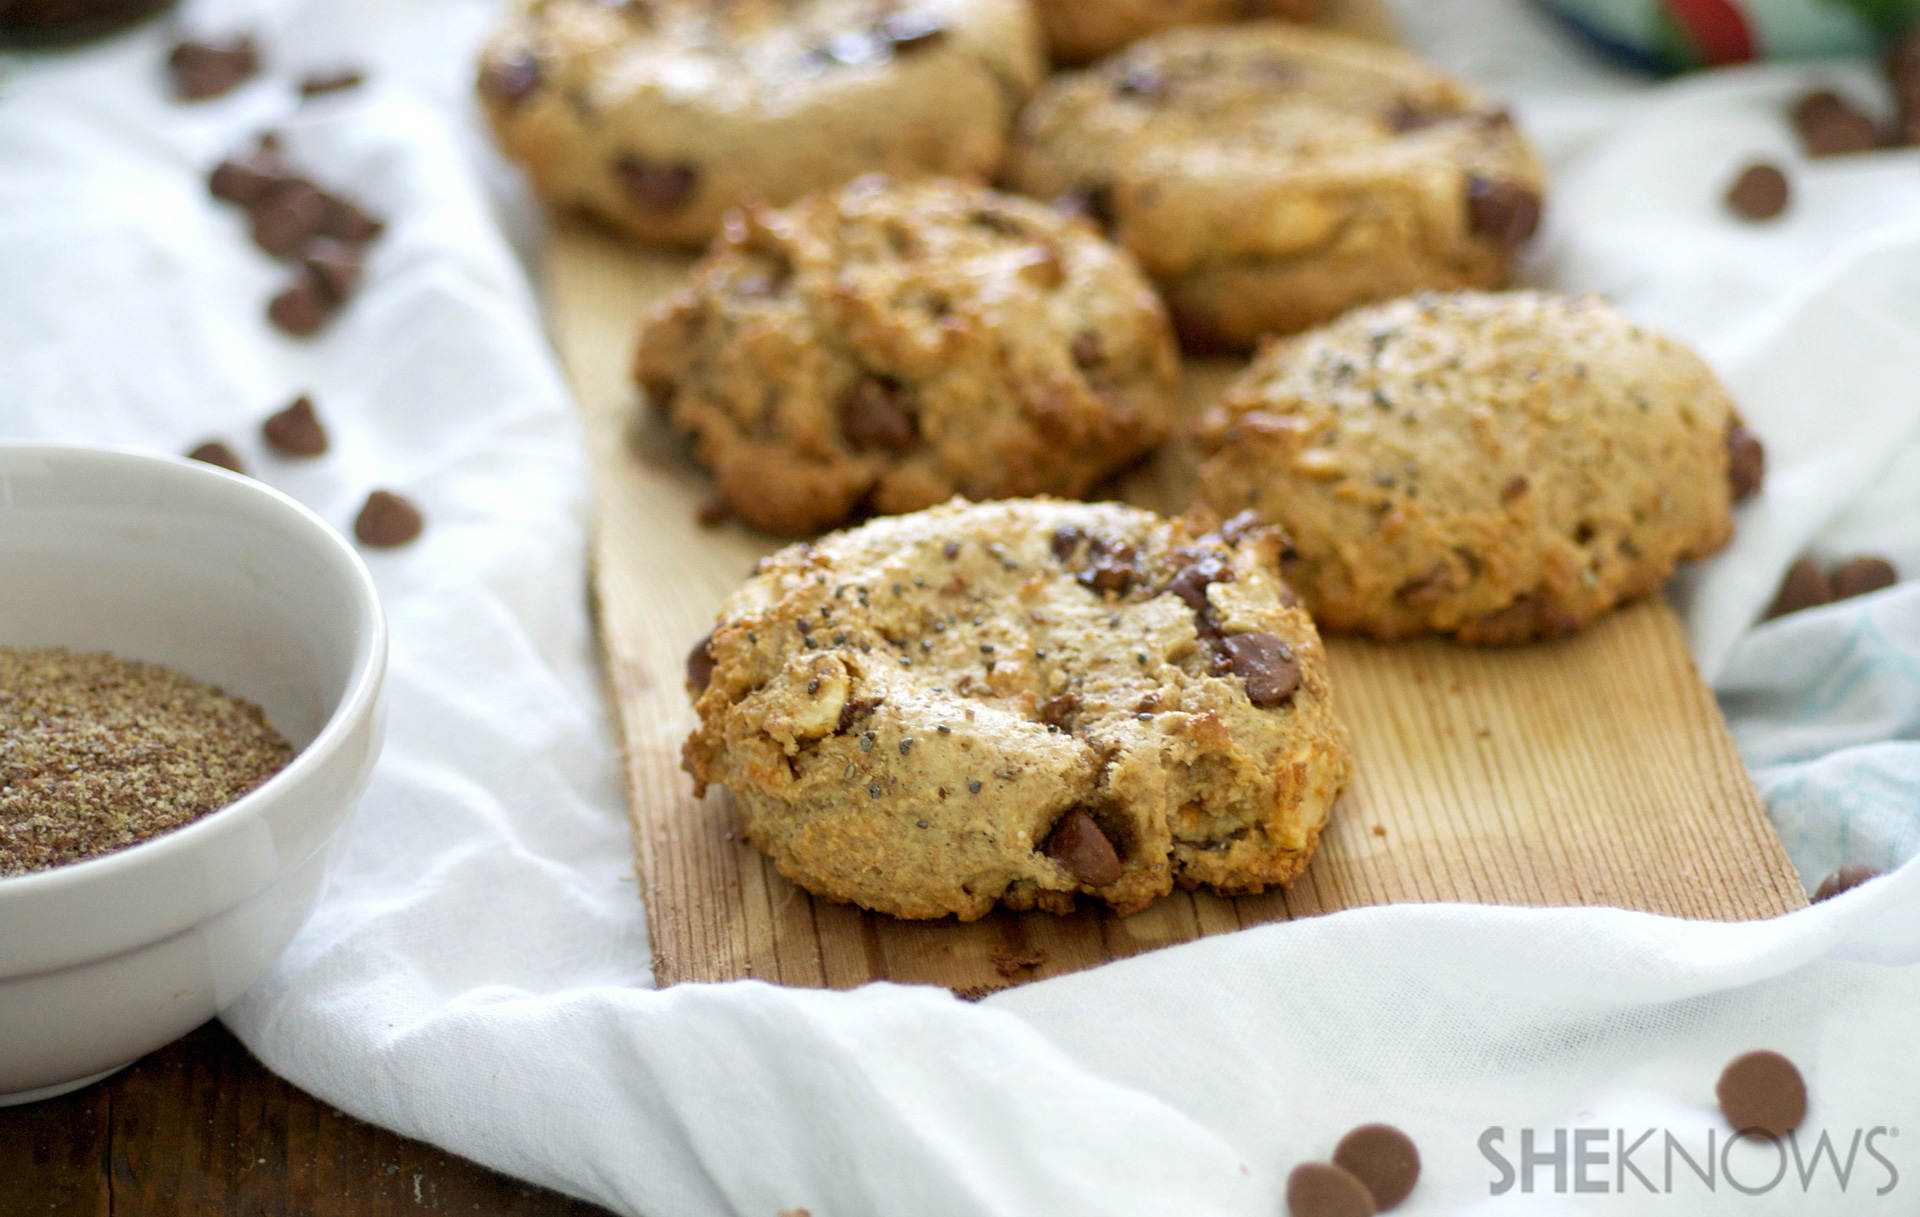 Peanut butter flax & chia seed cookies